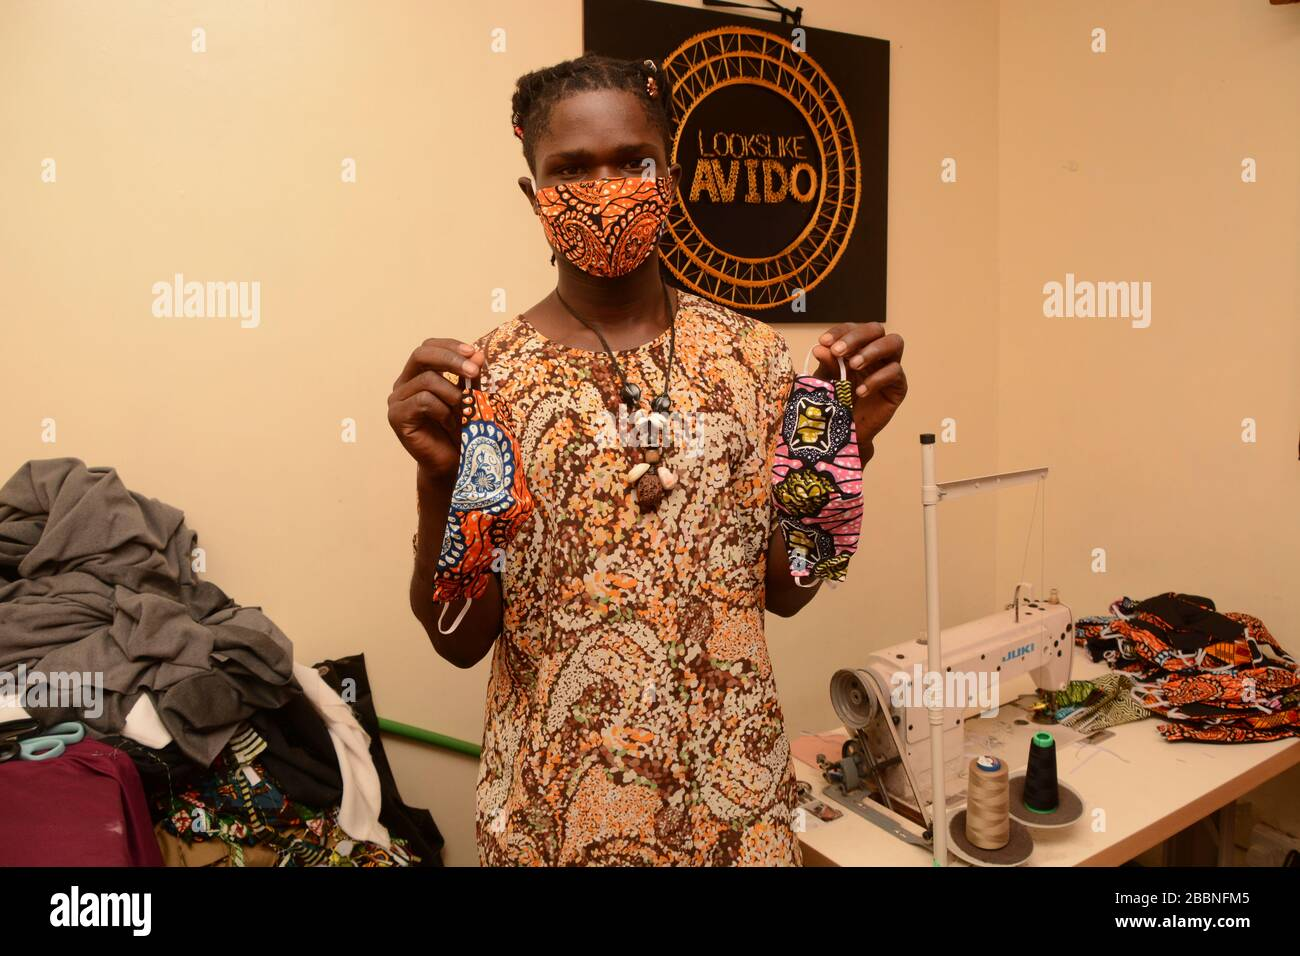 David Ochieng Founder Of Lookslike Avido Fashion Line Displays Some Of His Re Usable Face Masks